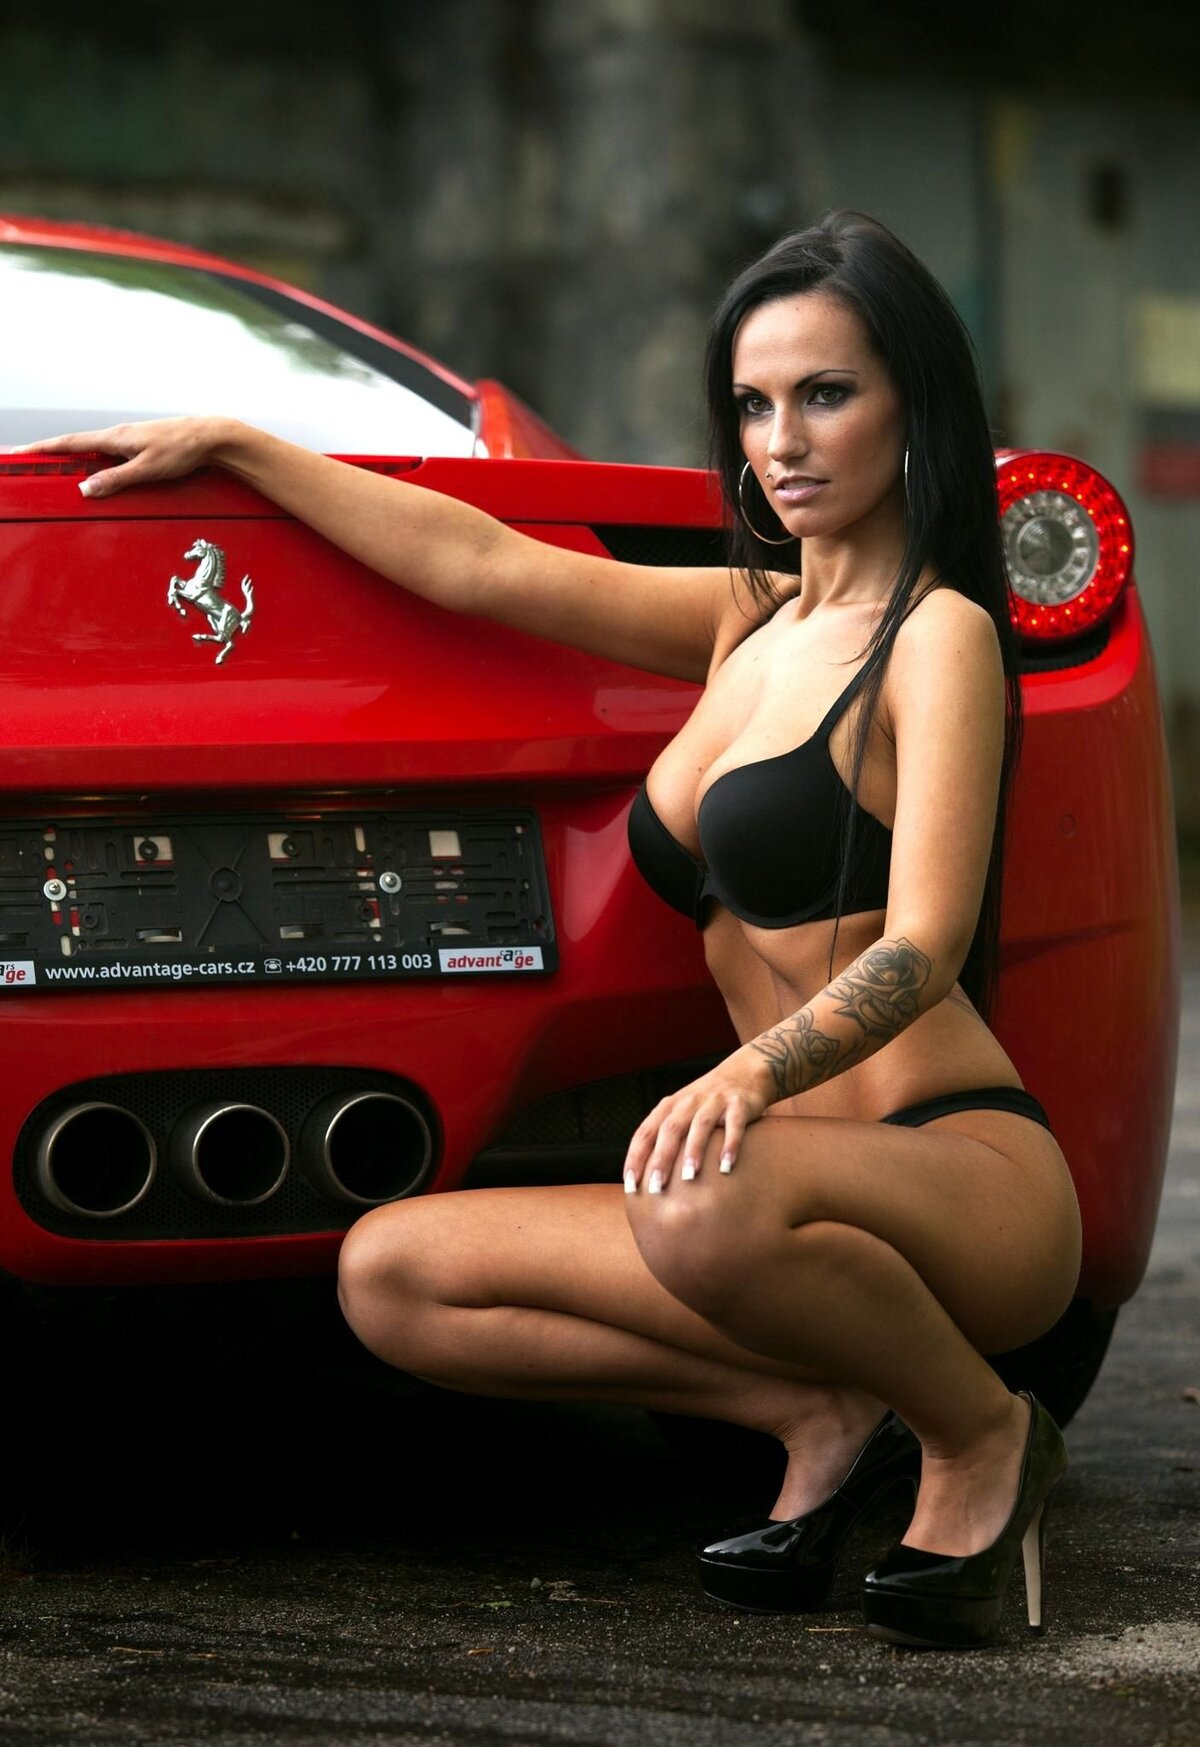 cool-cars-and-sexy-girls-pussy-interracial-videos